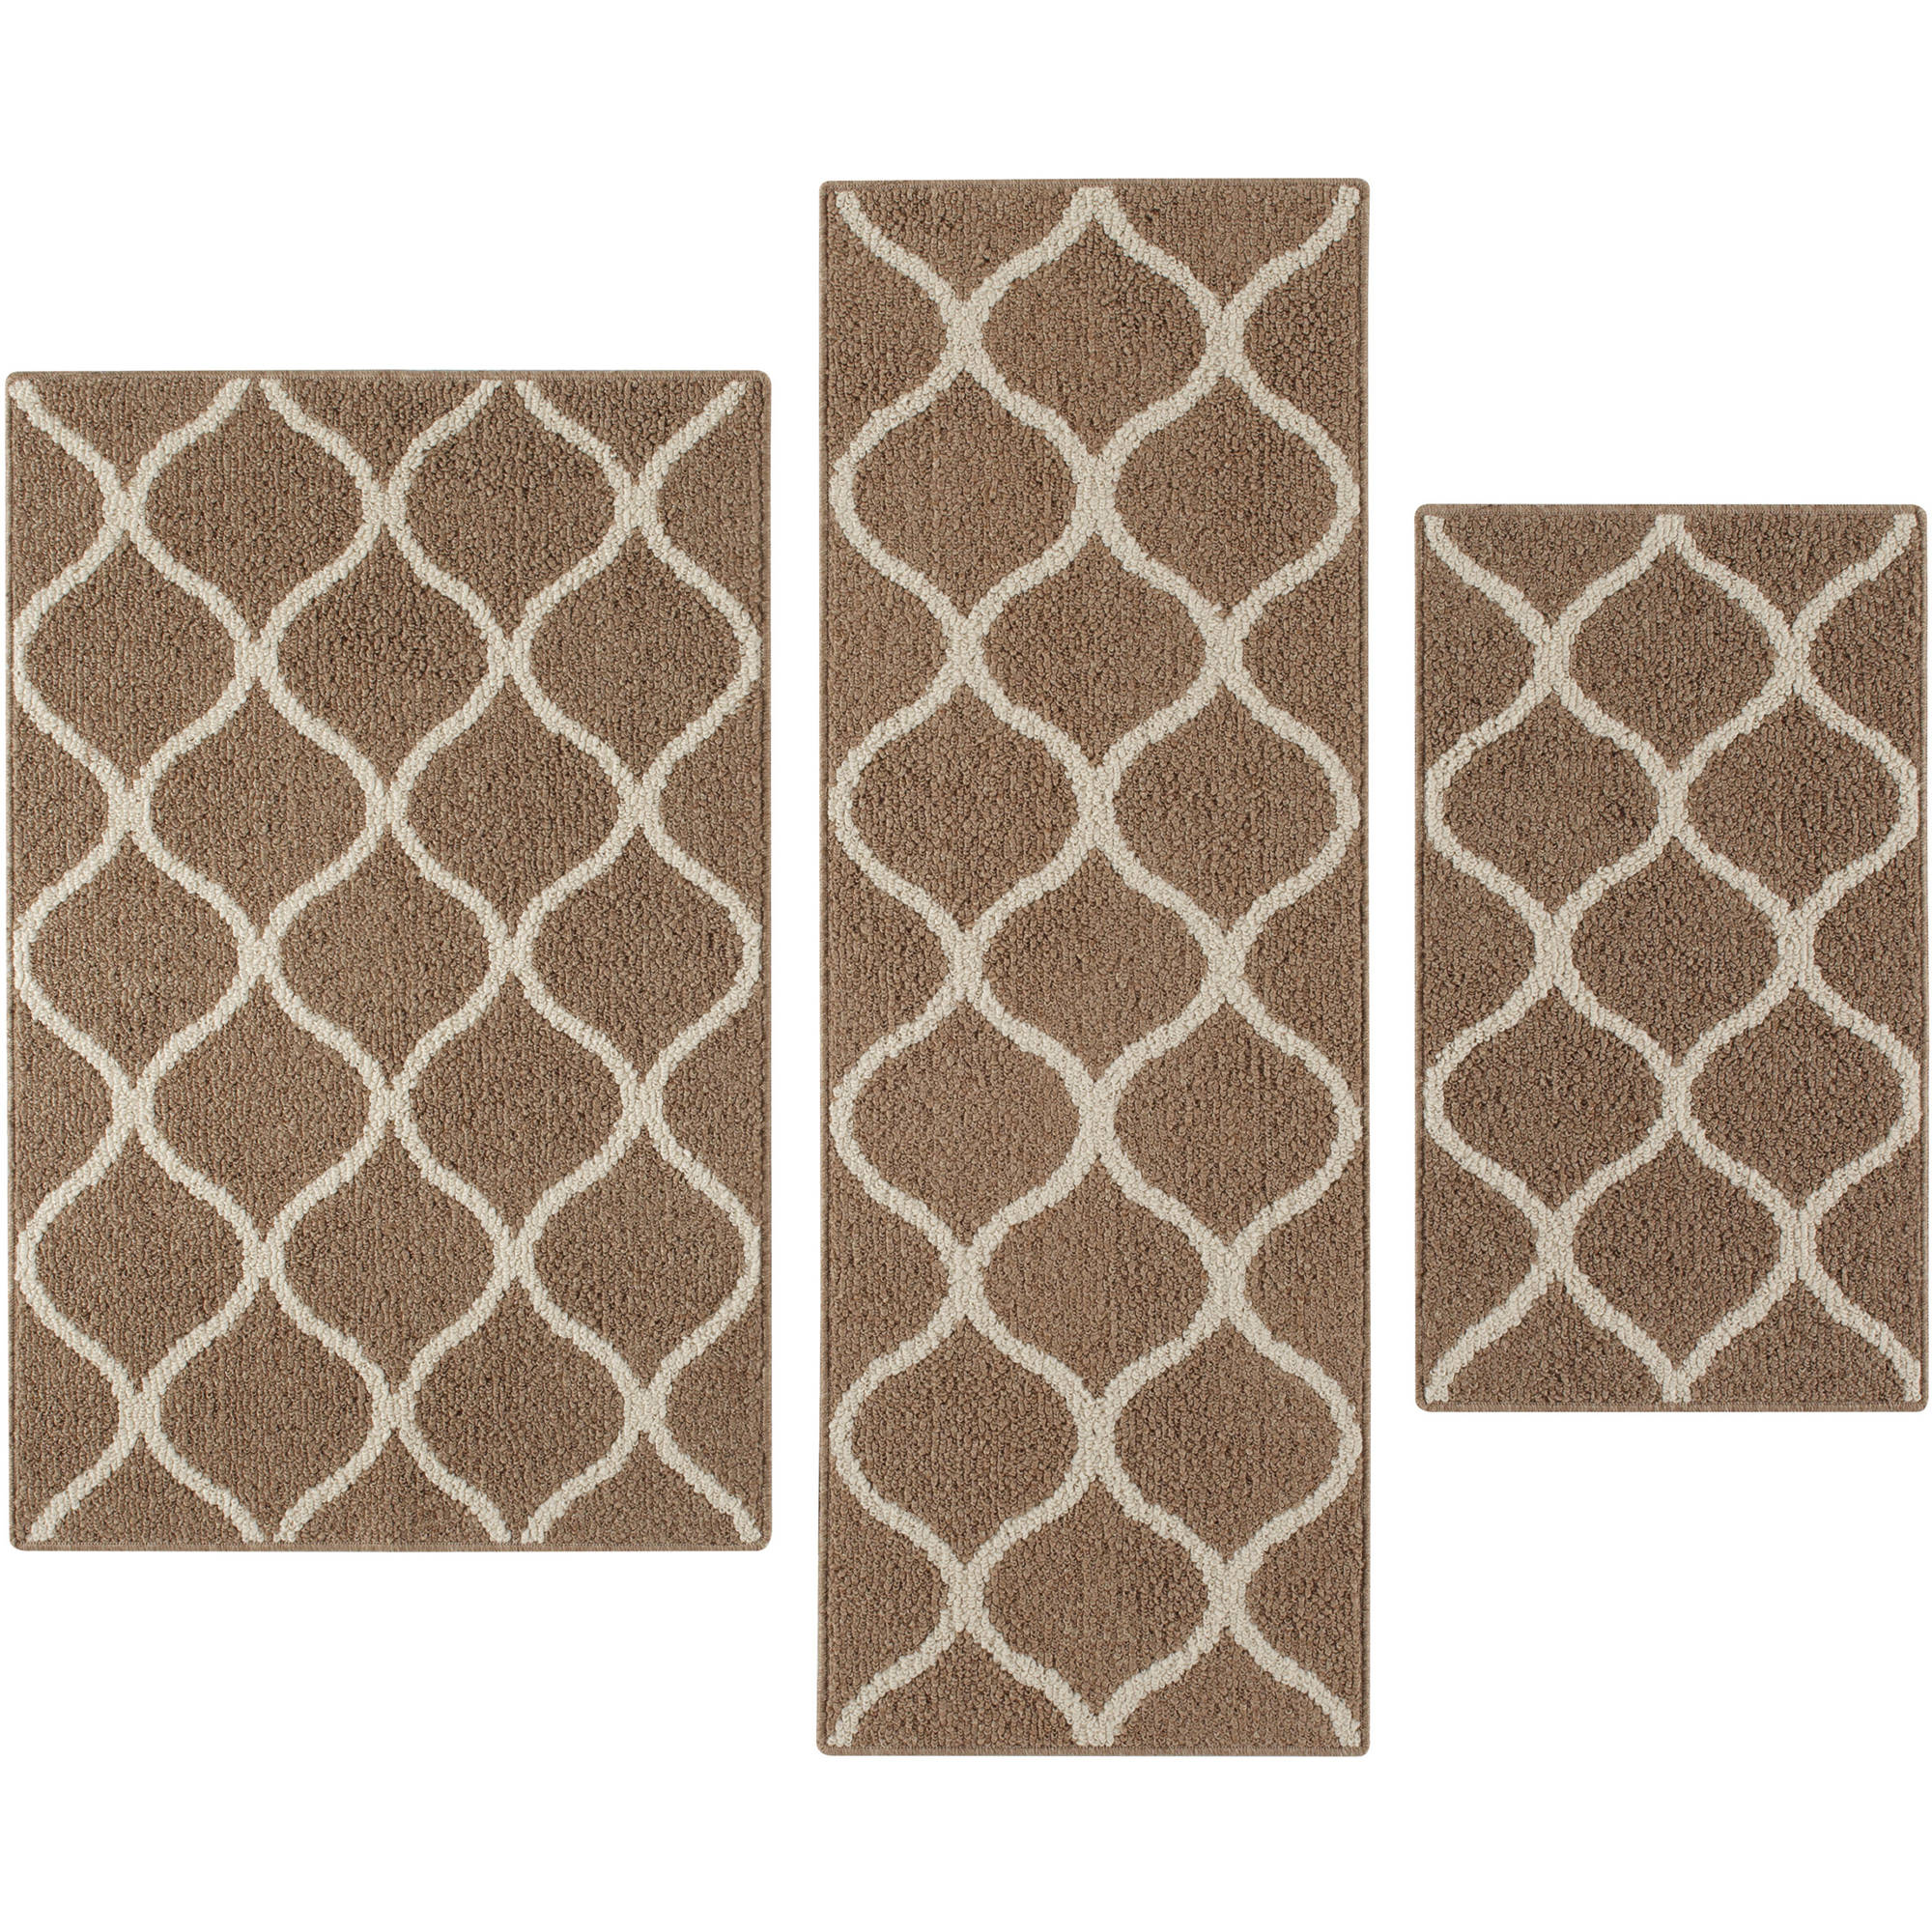 Mainstays Sheridan 3-Piece Accent Rug Set